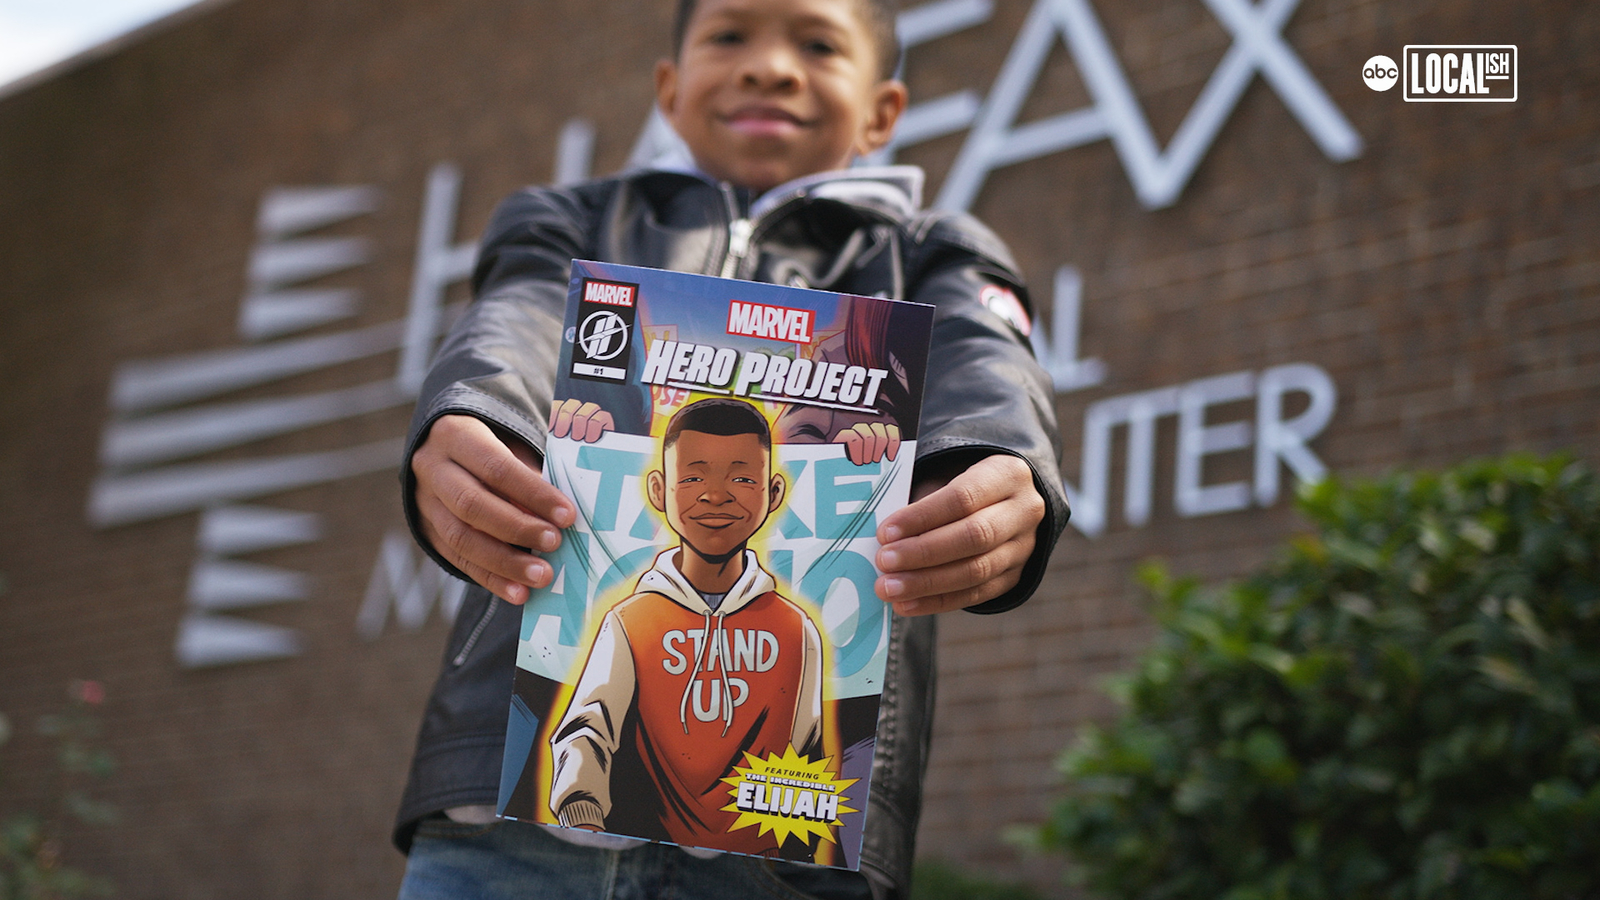 Marvel Hero Project's Elijah Lee Fights for Abused Children